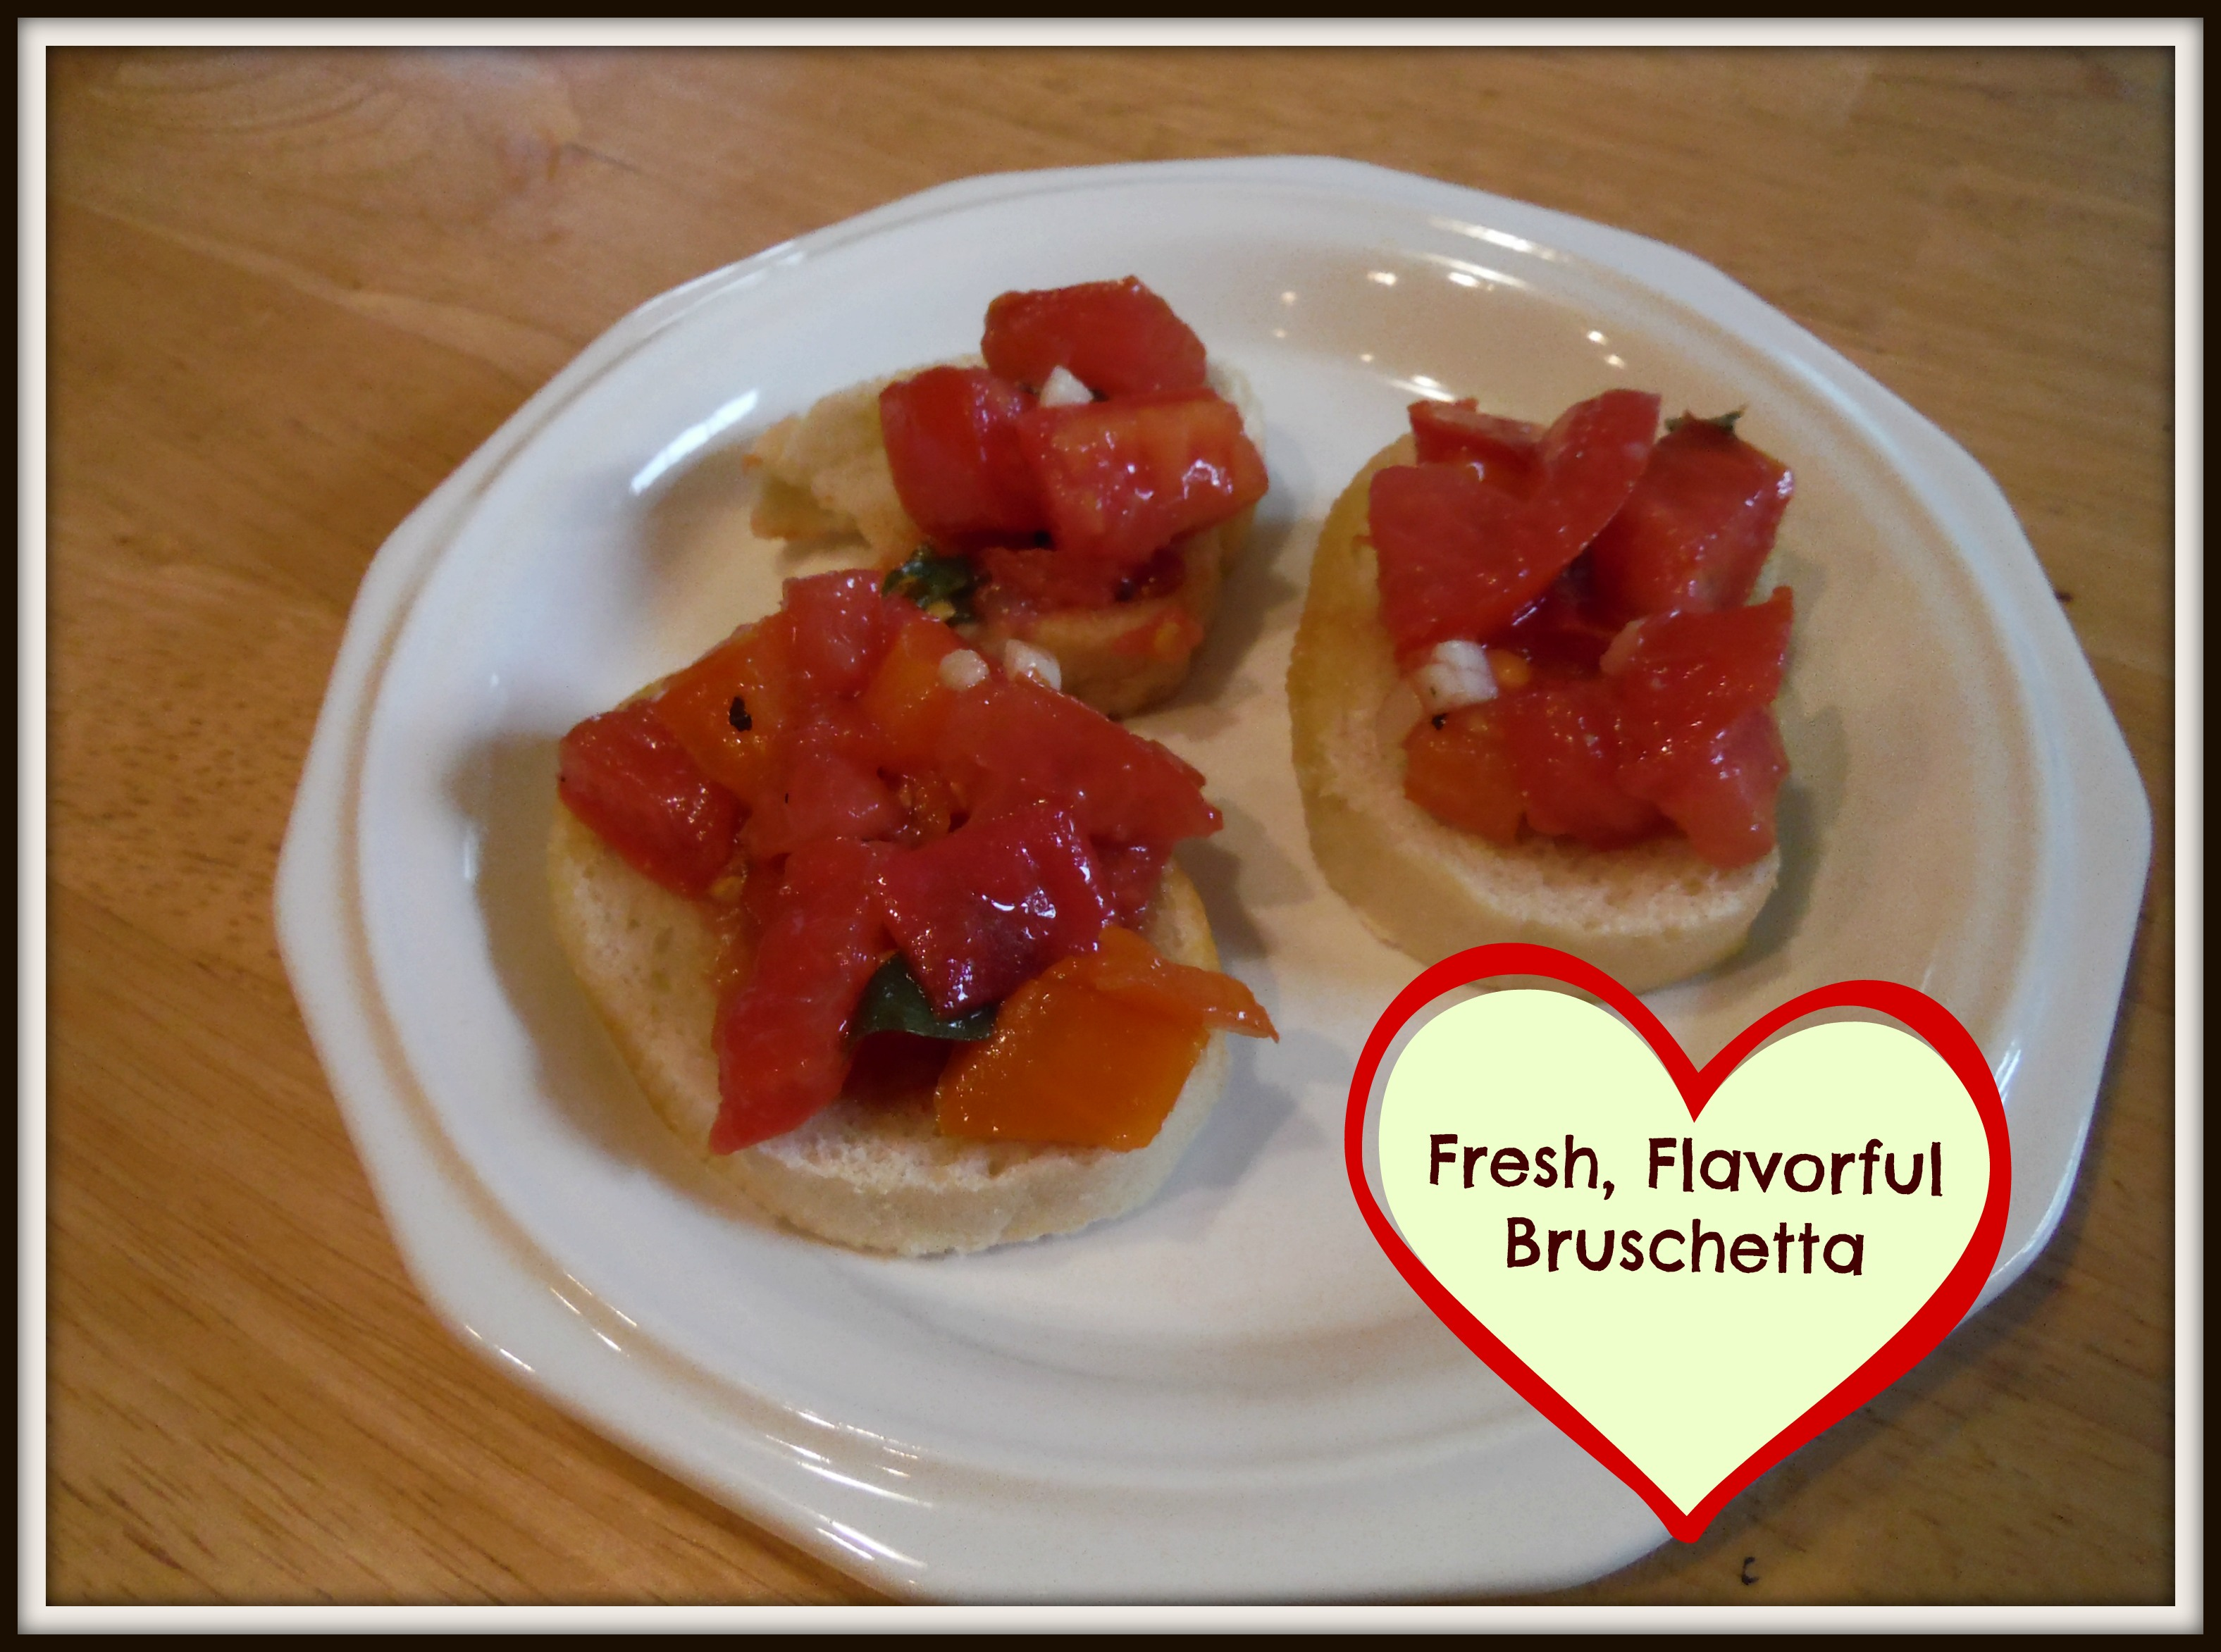 Fresh, Flavorful Bruschetta